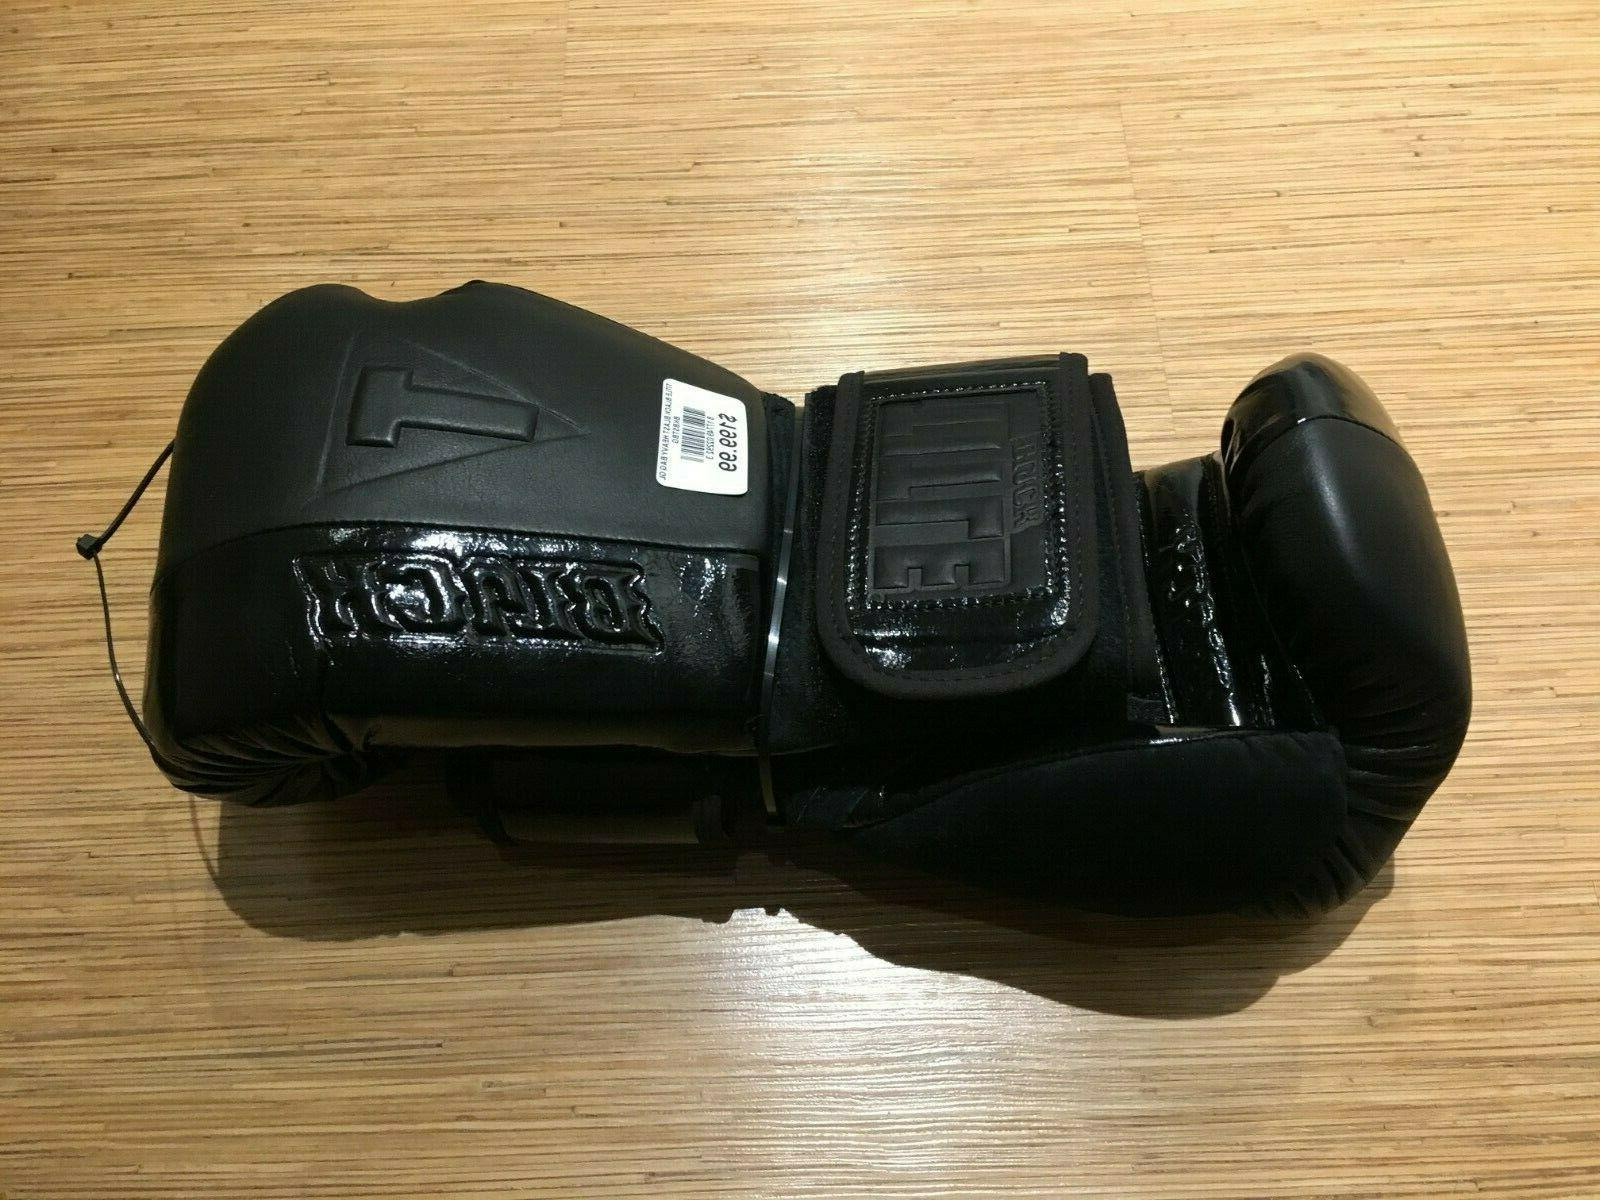 NEW 16 oz Title Boxing Black Blast Gloves $70 BELOW RETAIL W